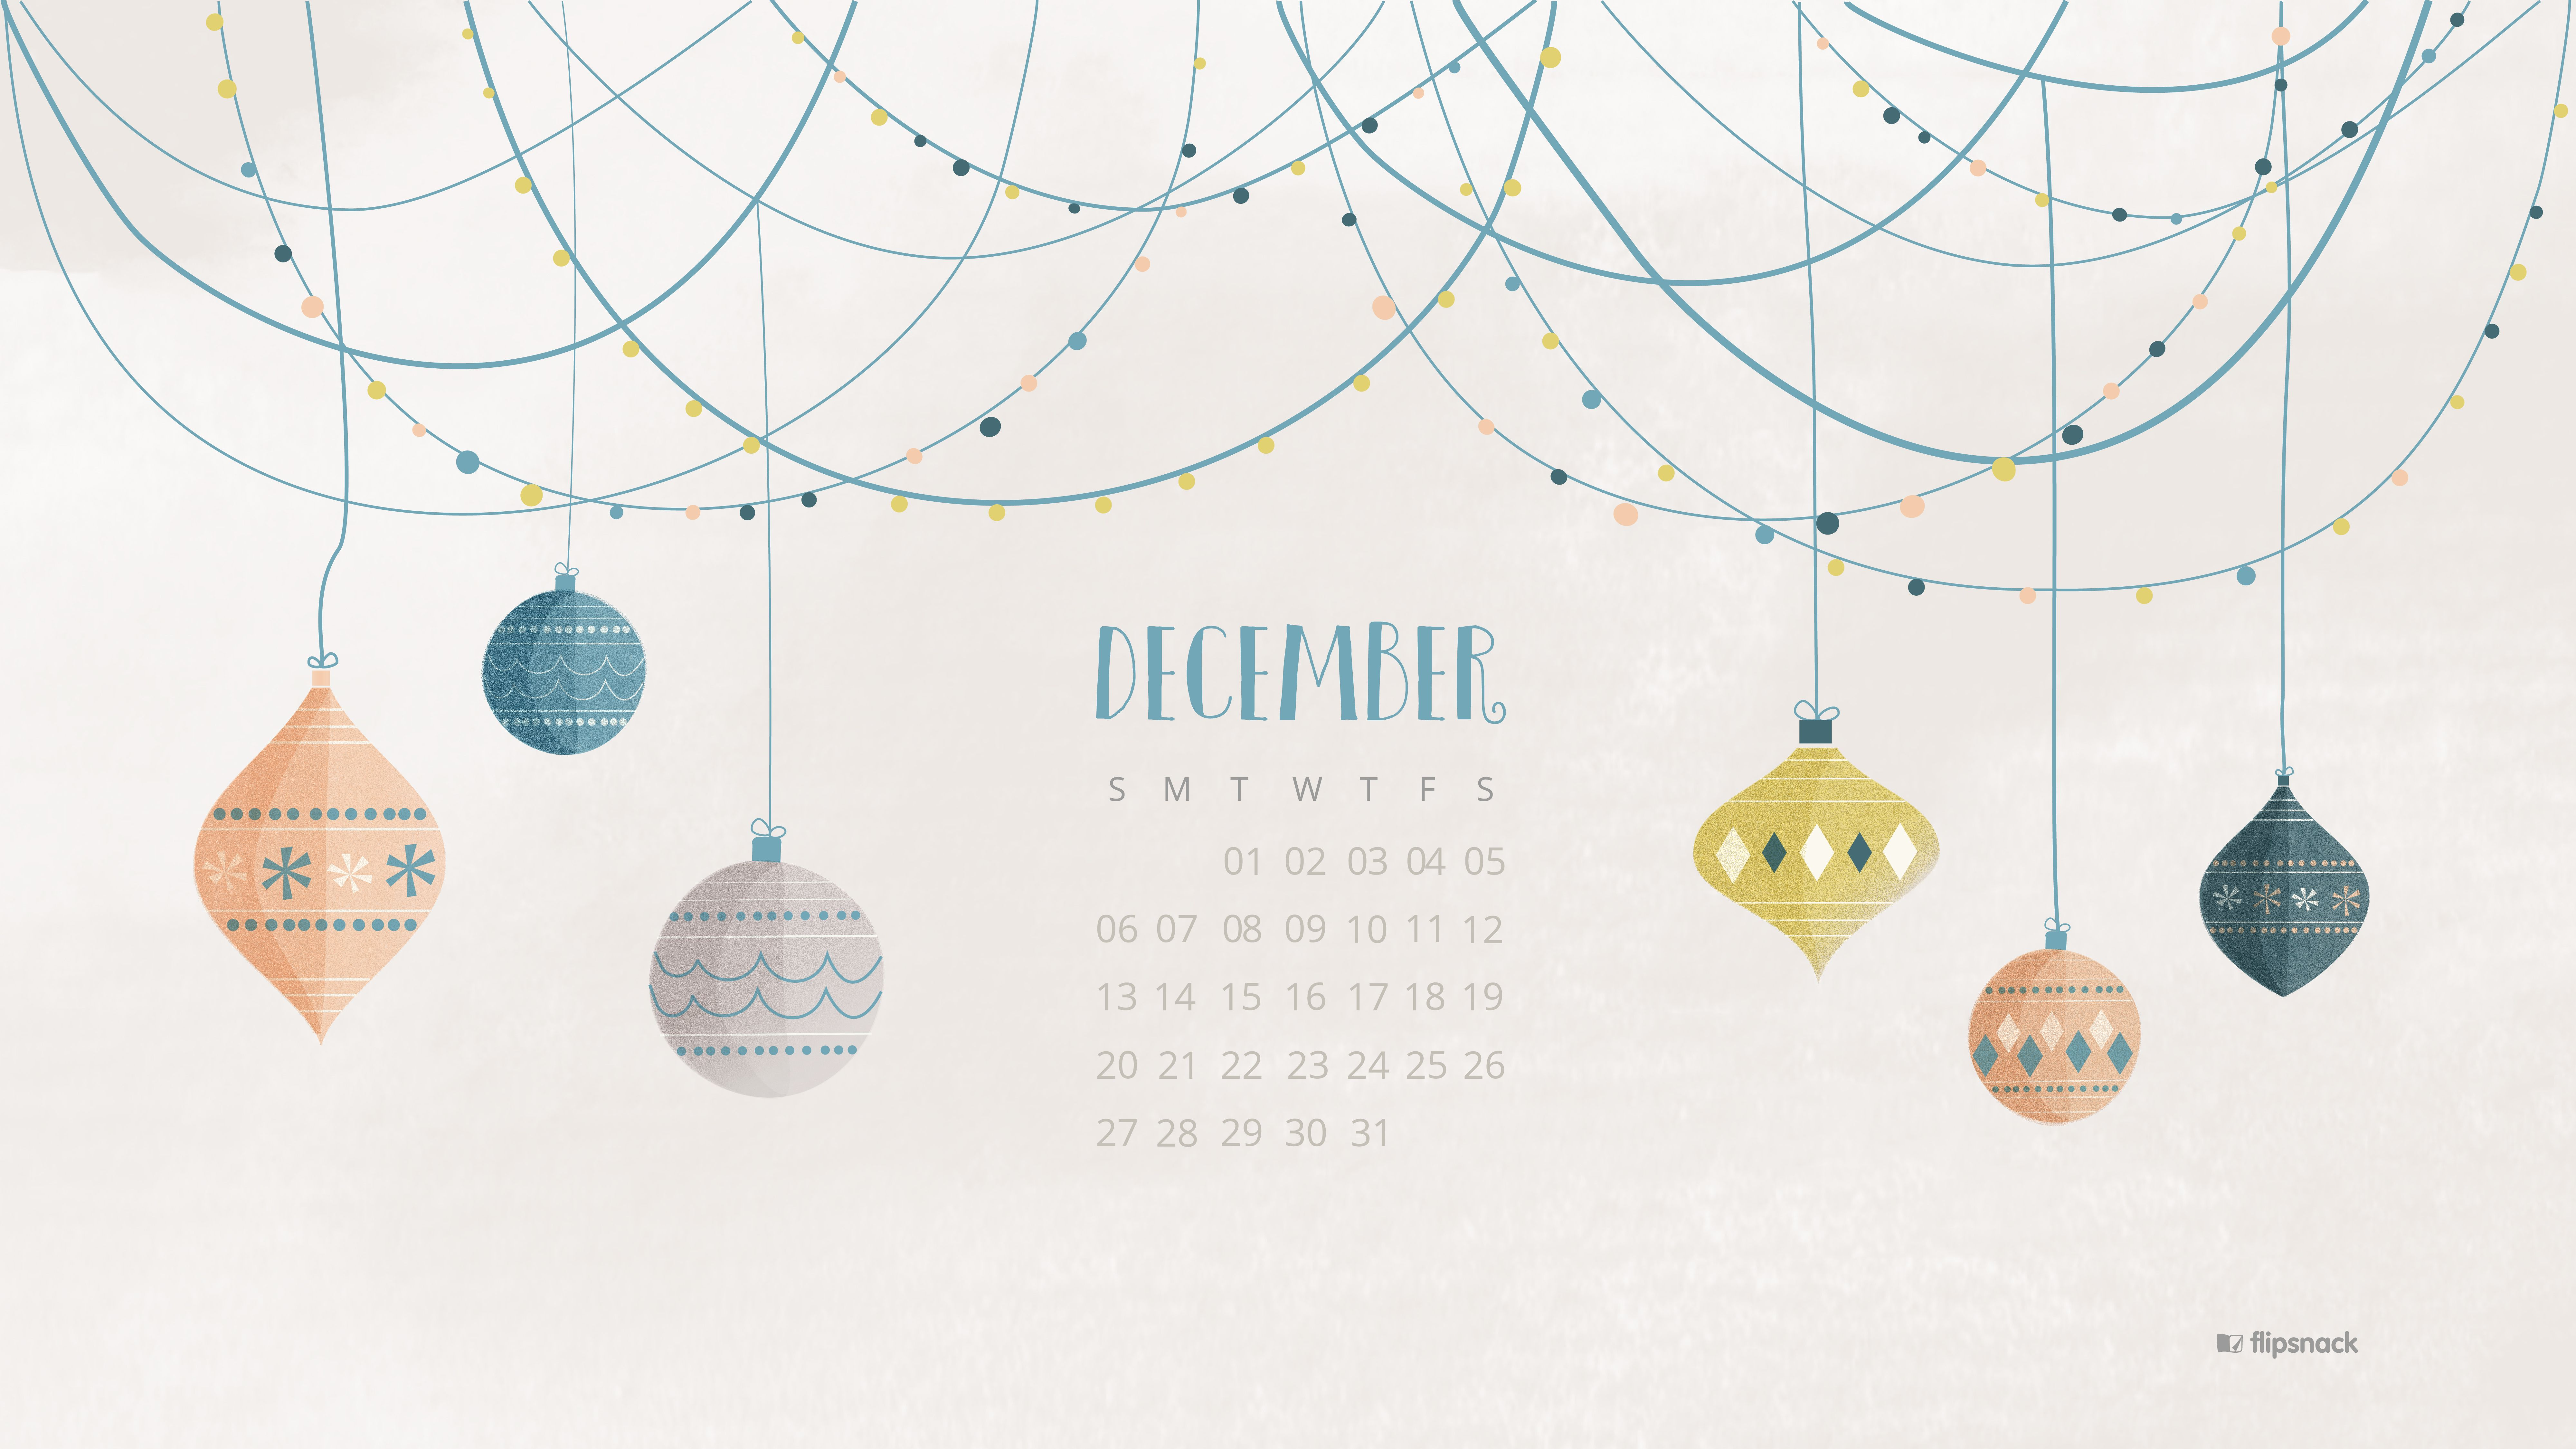 Freebies December 2015 wallpaper calendars Wallpapers 2015 8000x4500